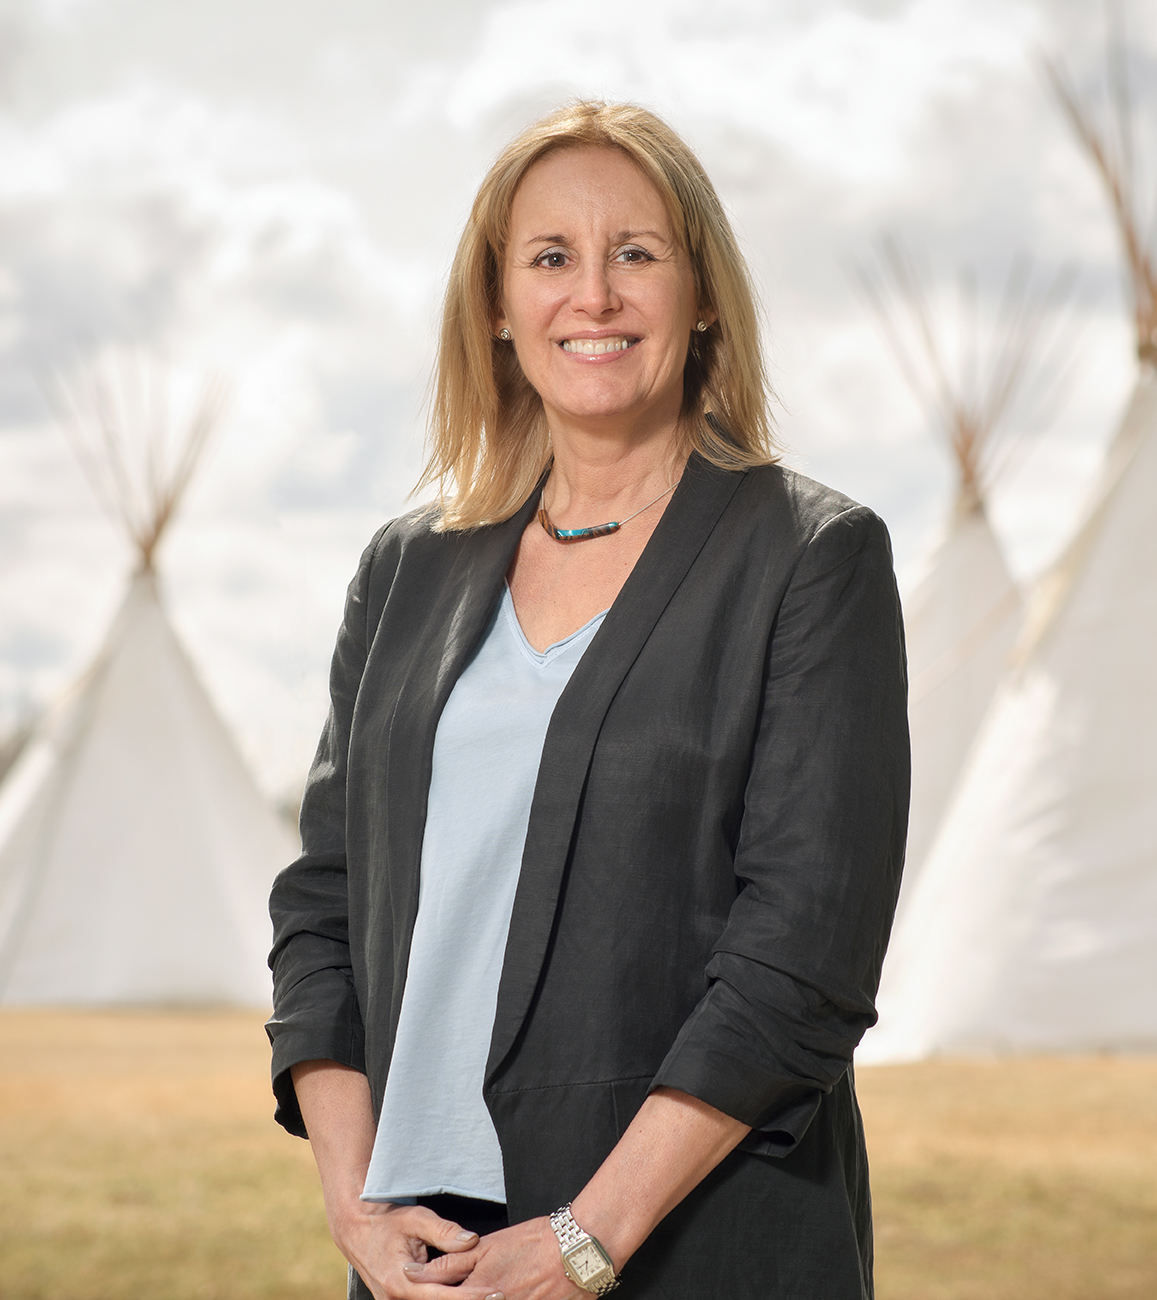 Woman in business attire in front of teepees